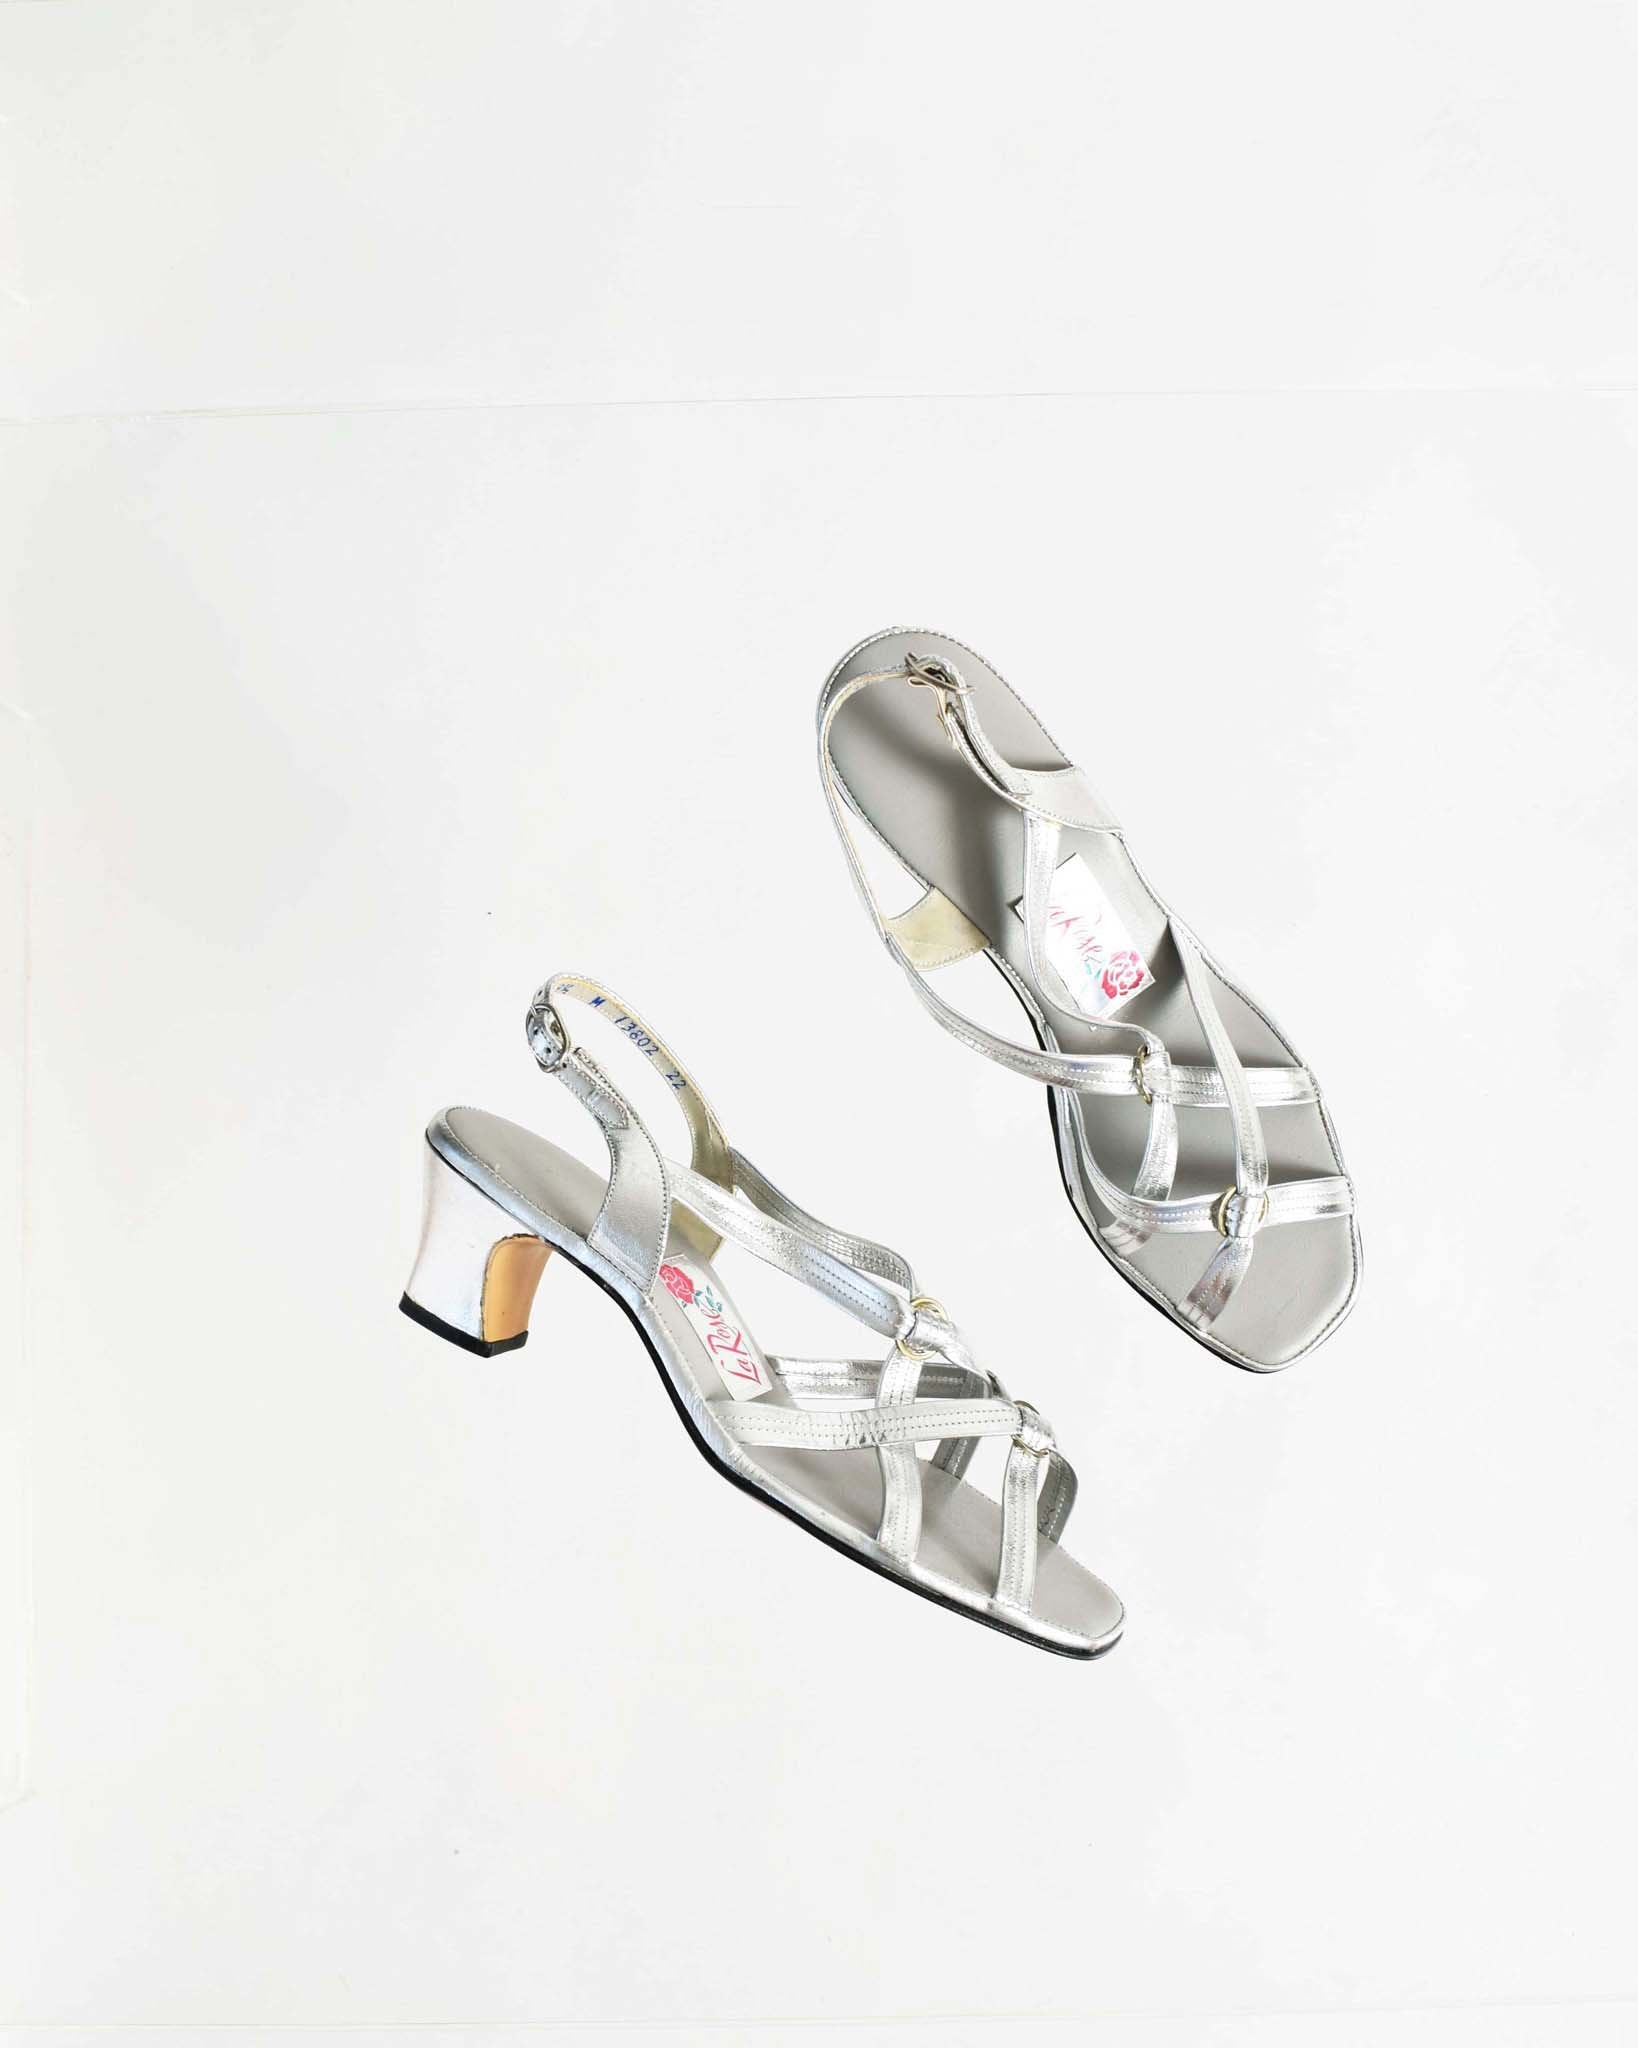 Vintage 1970s Metallic Strappy Sandals